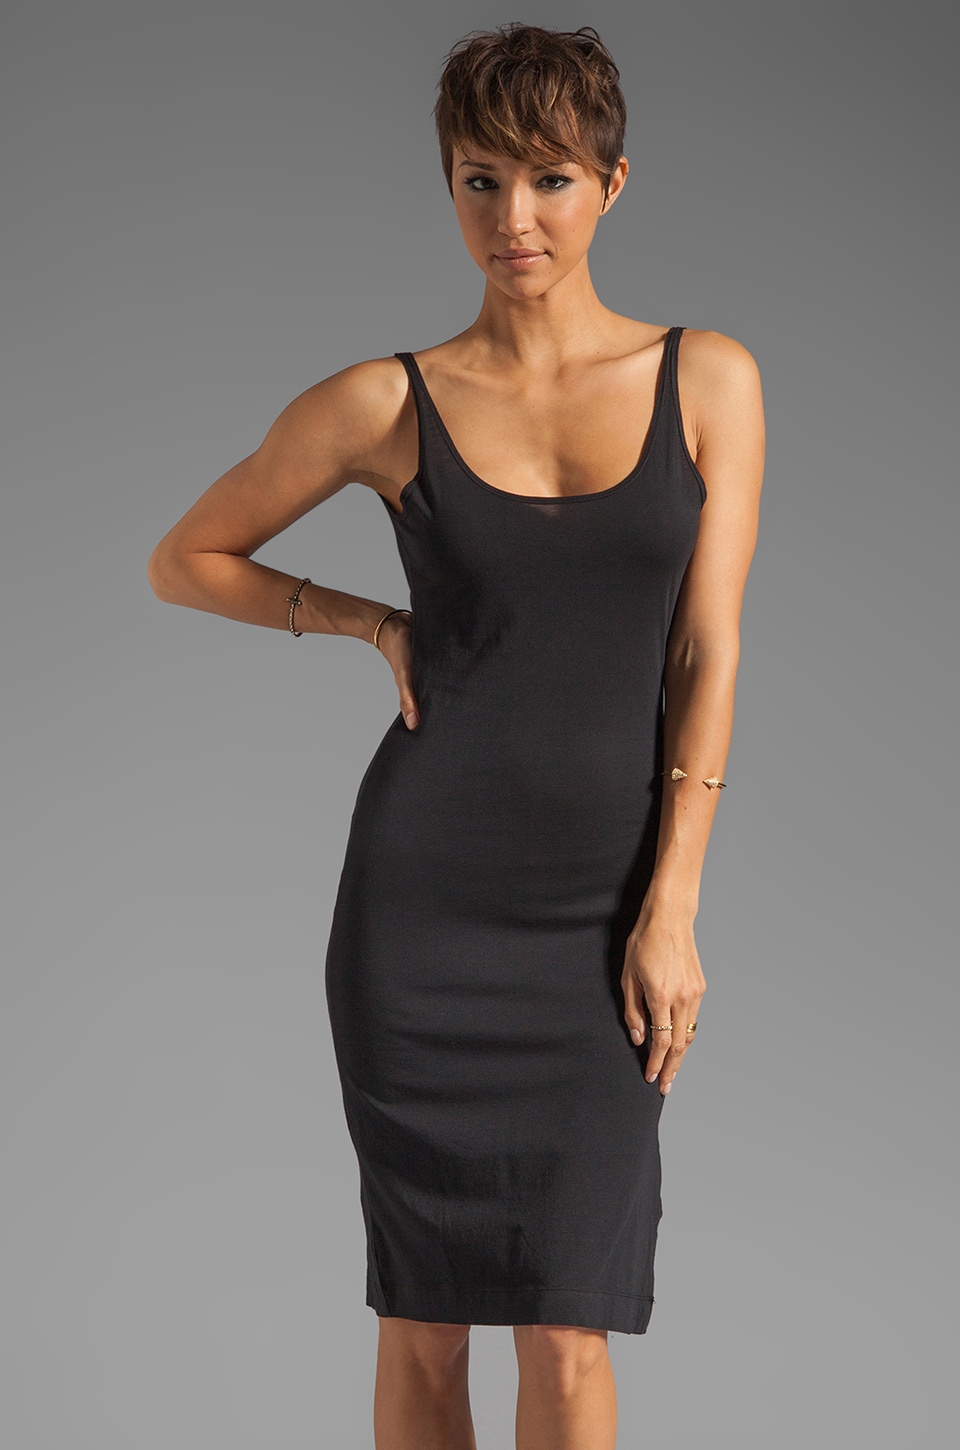 Bobi Modal Jersey V Back Tank Dress in Black